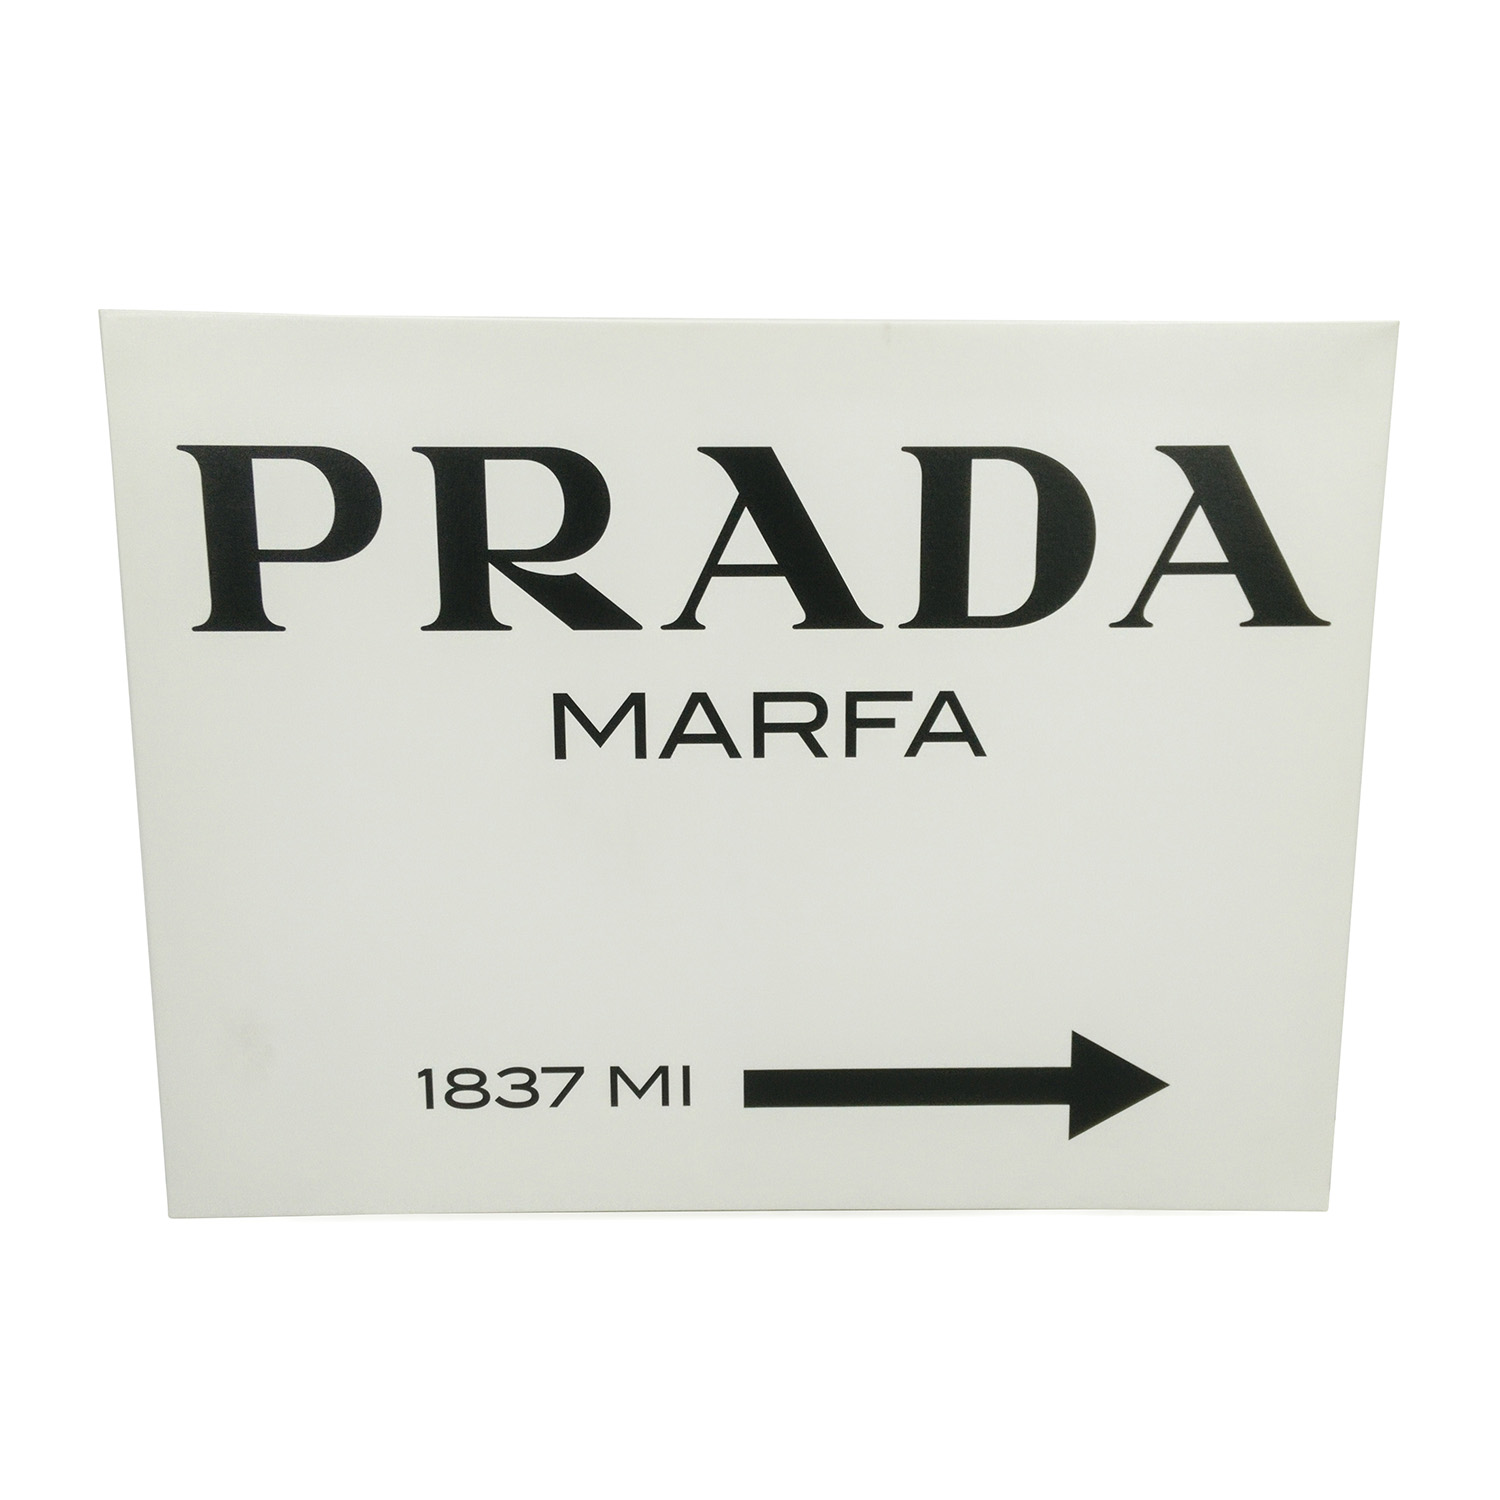 Prada Marfa Canvas from Gossip Girl / Decor